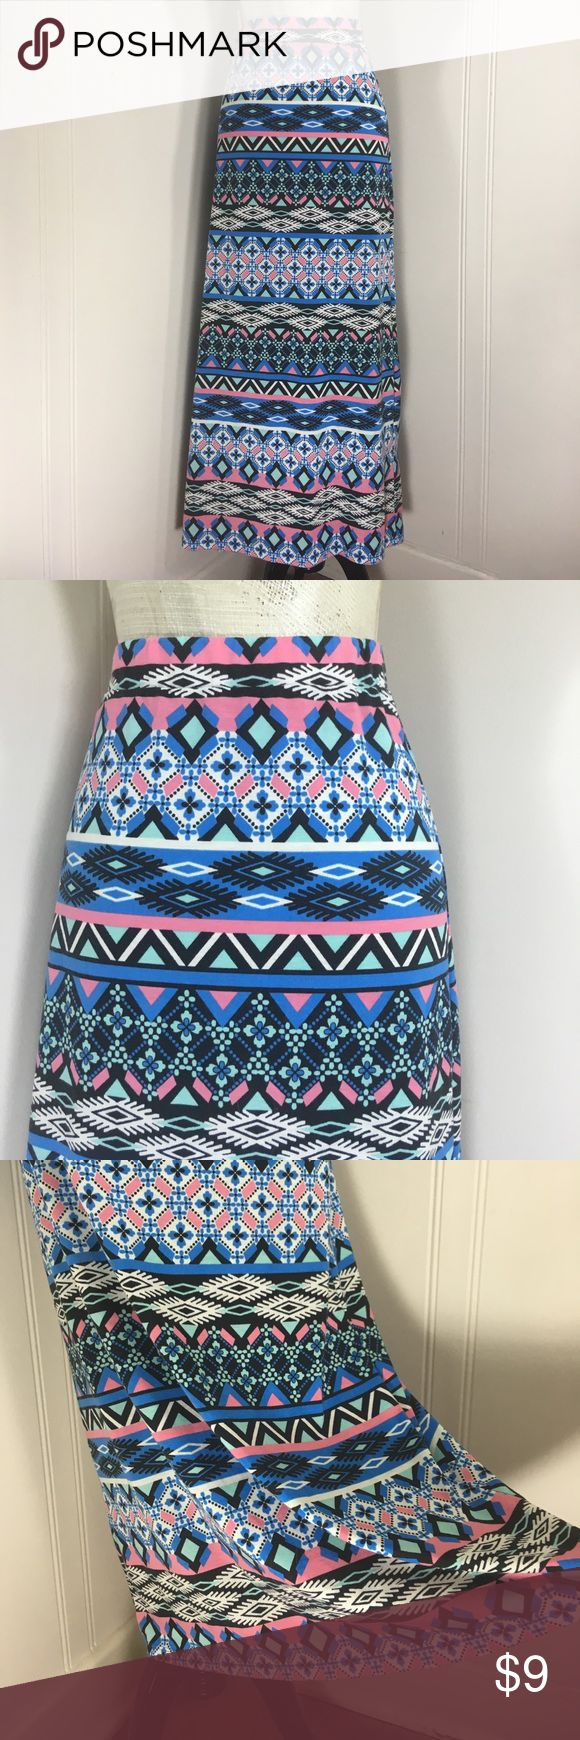 """All Items 3for$15! Boho Hippie Tribal Maxi Skirt Preowned condition. No stains or holes. Normal wash and wear.               Tag Size: juniors Large.                      Waist Flat: 14"""". (Before Stretch).       Length: 37"""".   Stretchy.                       Please go off measurements and NOT Tag Size. Sizes differ from company to company. I 💜questions! Please ask any and all questions before purchasing.   Thanks! ~Rag Time Machine.~ Ambiance Apparel Skirts Maxi"""